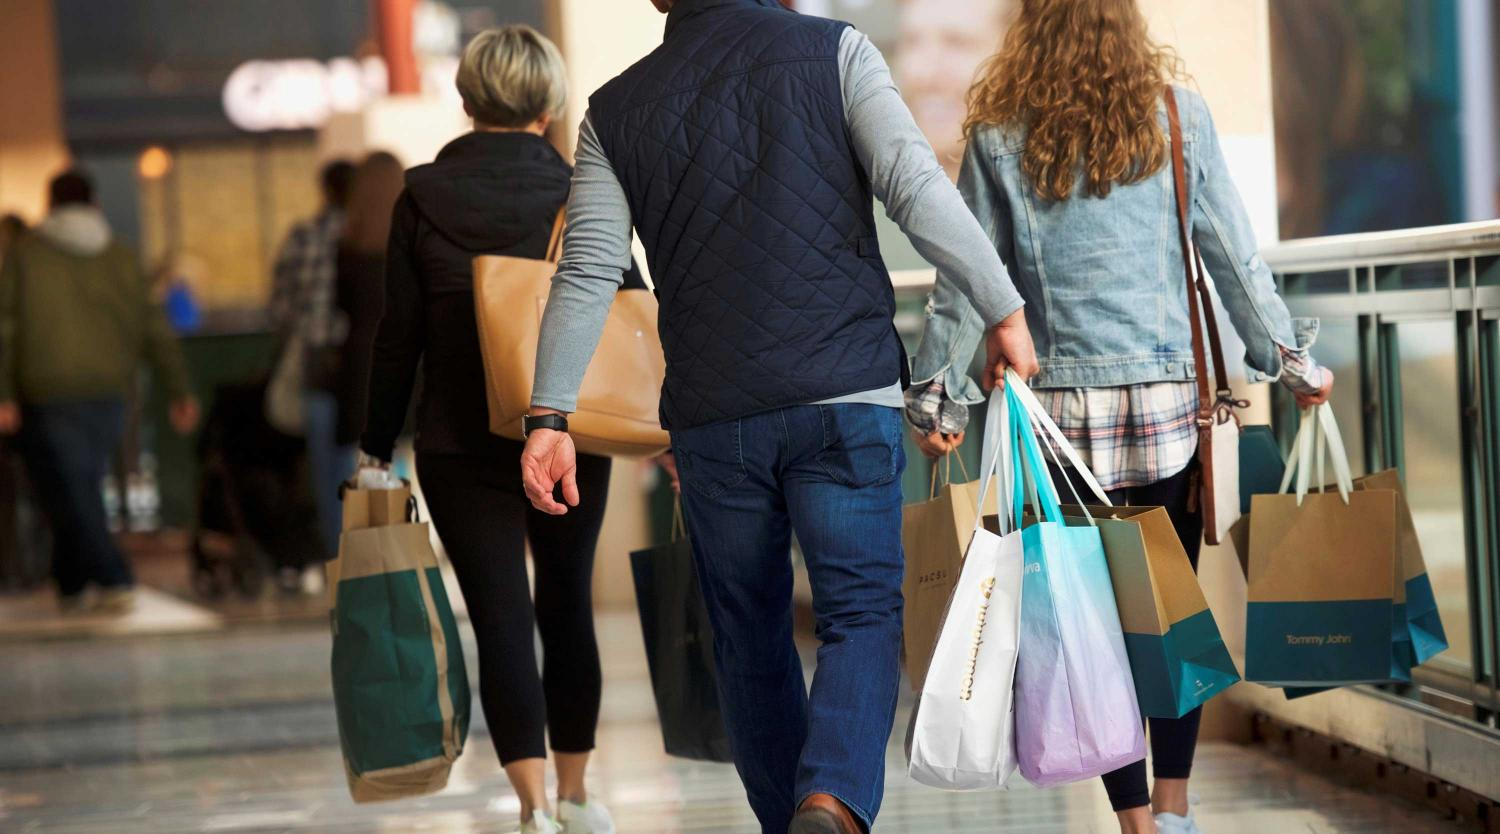 Shoppers carry bags of purchased merchandise at the King of Prussia Mall, United States' largest retail shopping space, in King of Prussia, Pennsylvania, U.S., December 8, 2018.